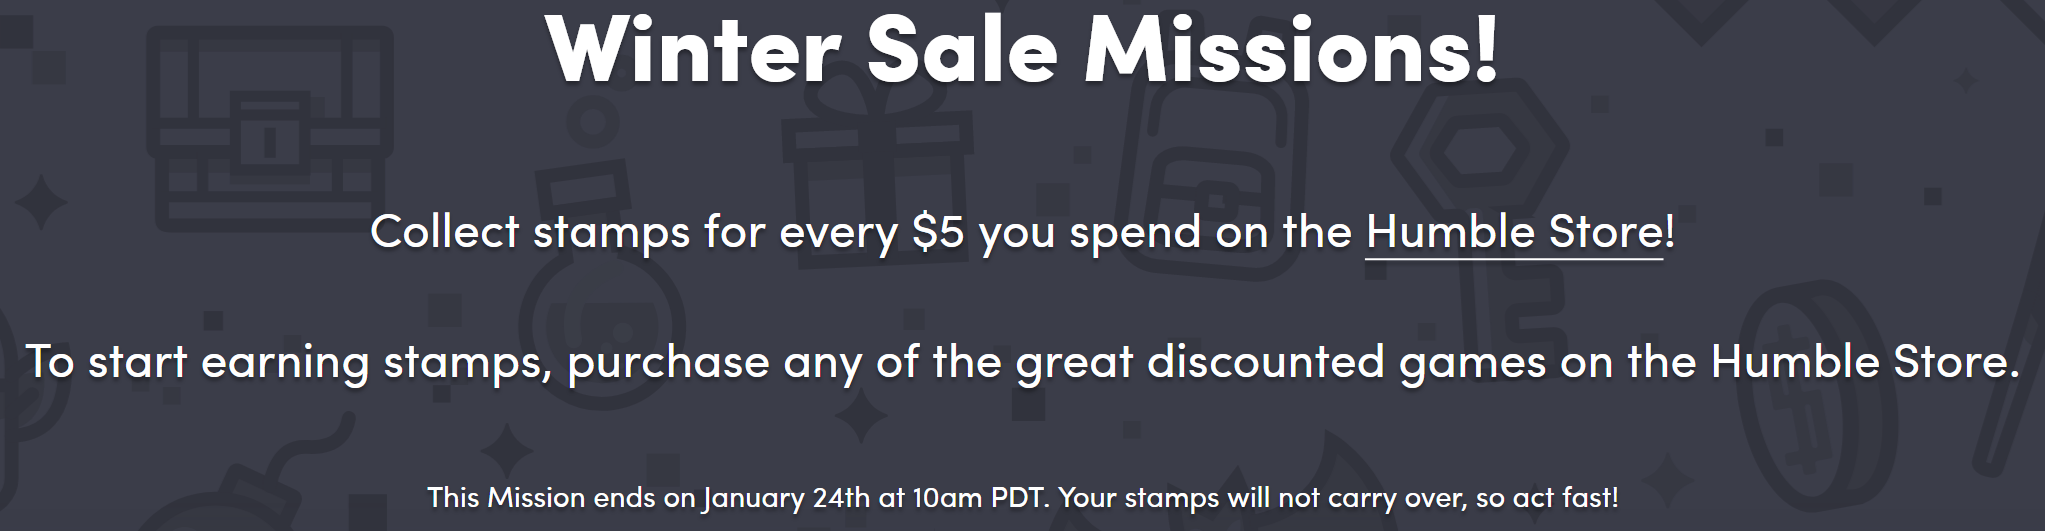 Screenshot_2019-01-11 Mission - Winter Sale Missions.png